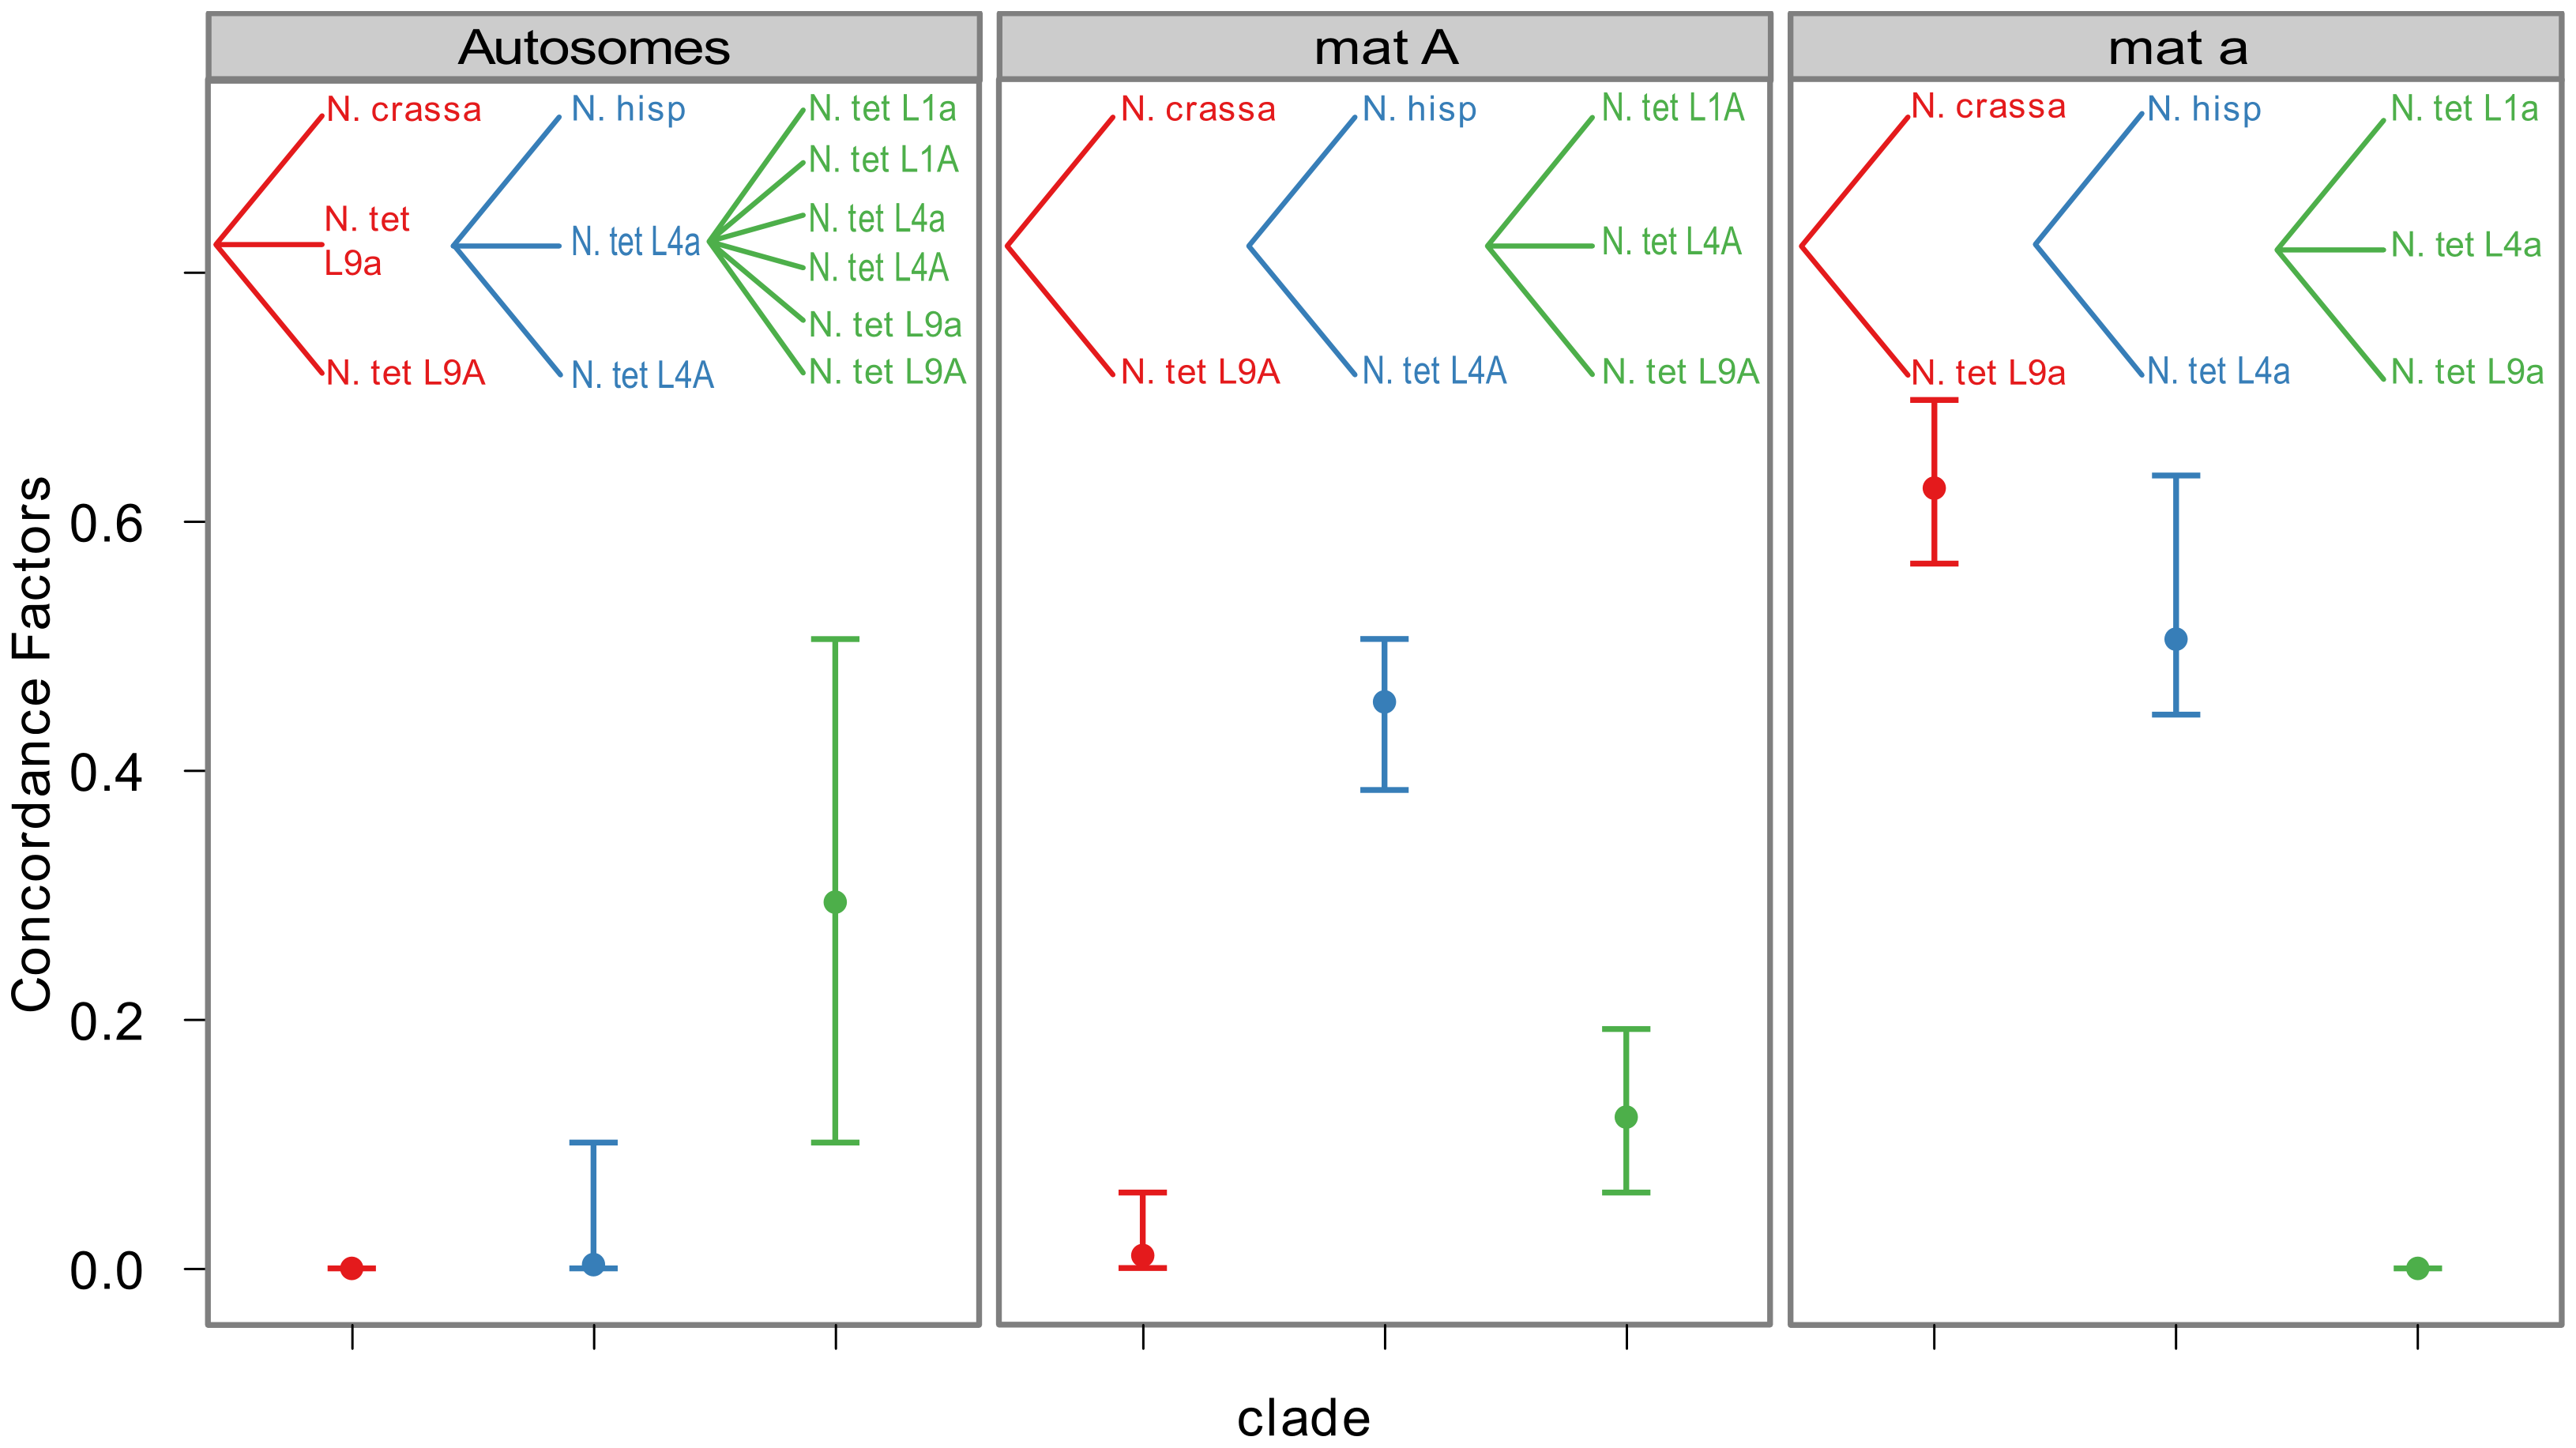 Bayesian concordance factors of selected clades, for the autosomes and the mating-type chromosomes (<i>mat A</i> and <i>mat a</i>) of Neurospora.